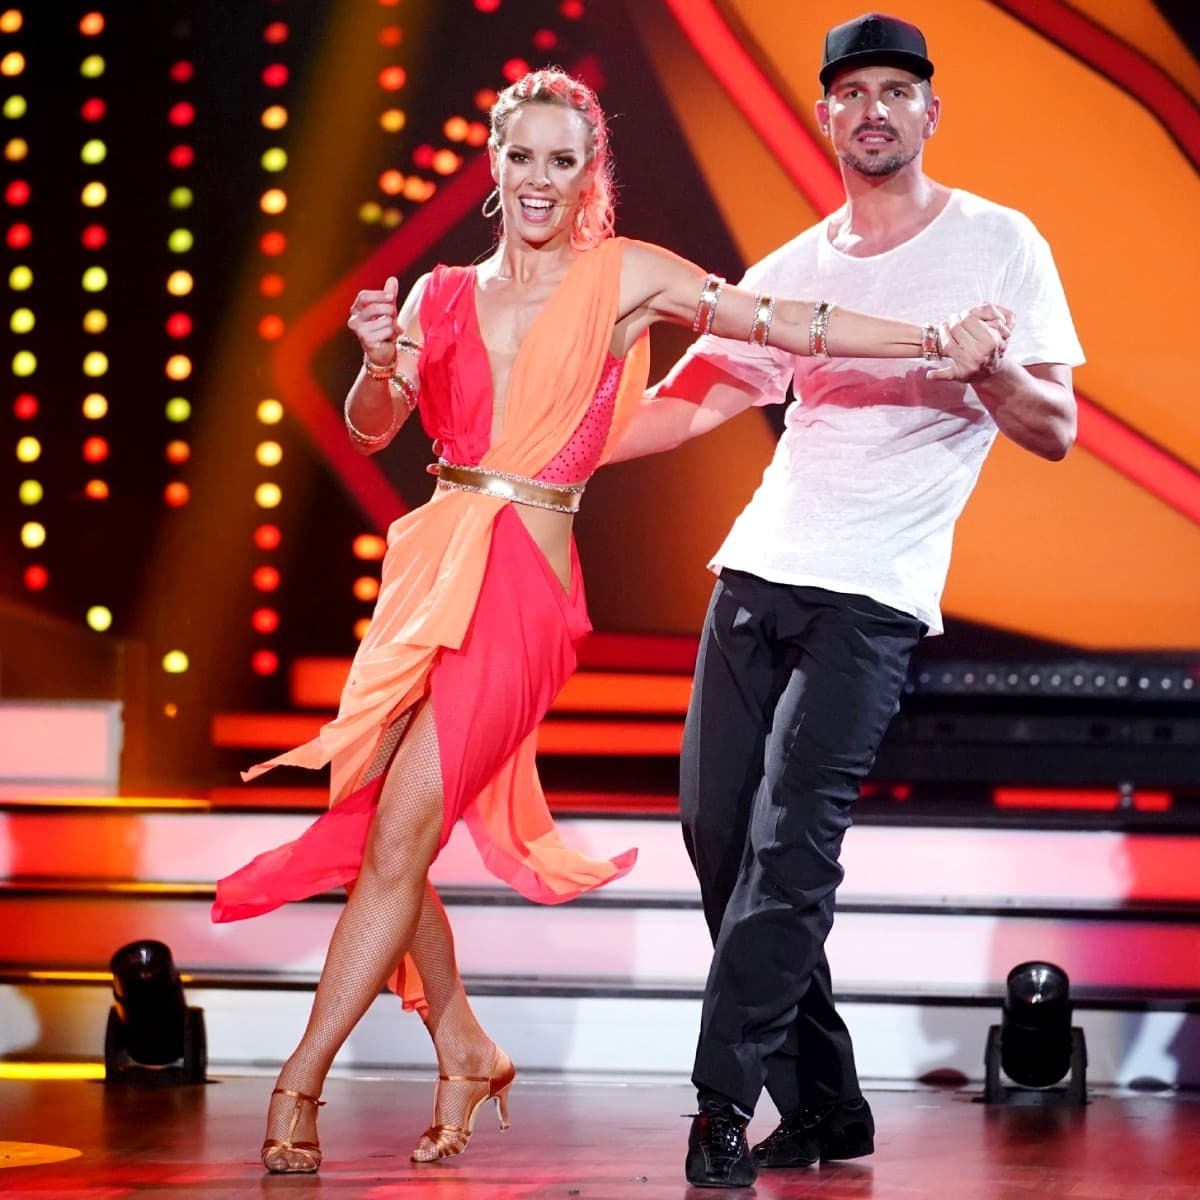 Isabel Edvardsson - Benjamin Piwko bei Let's dance am 29.3.2019